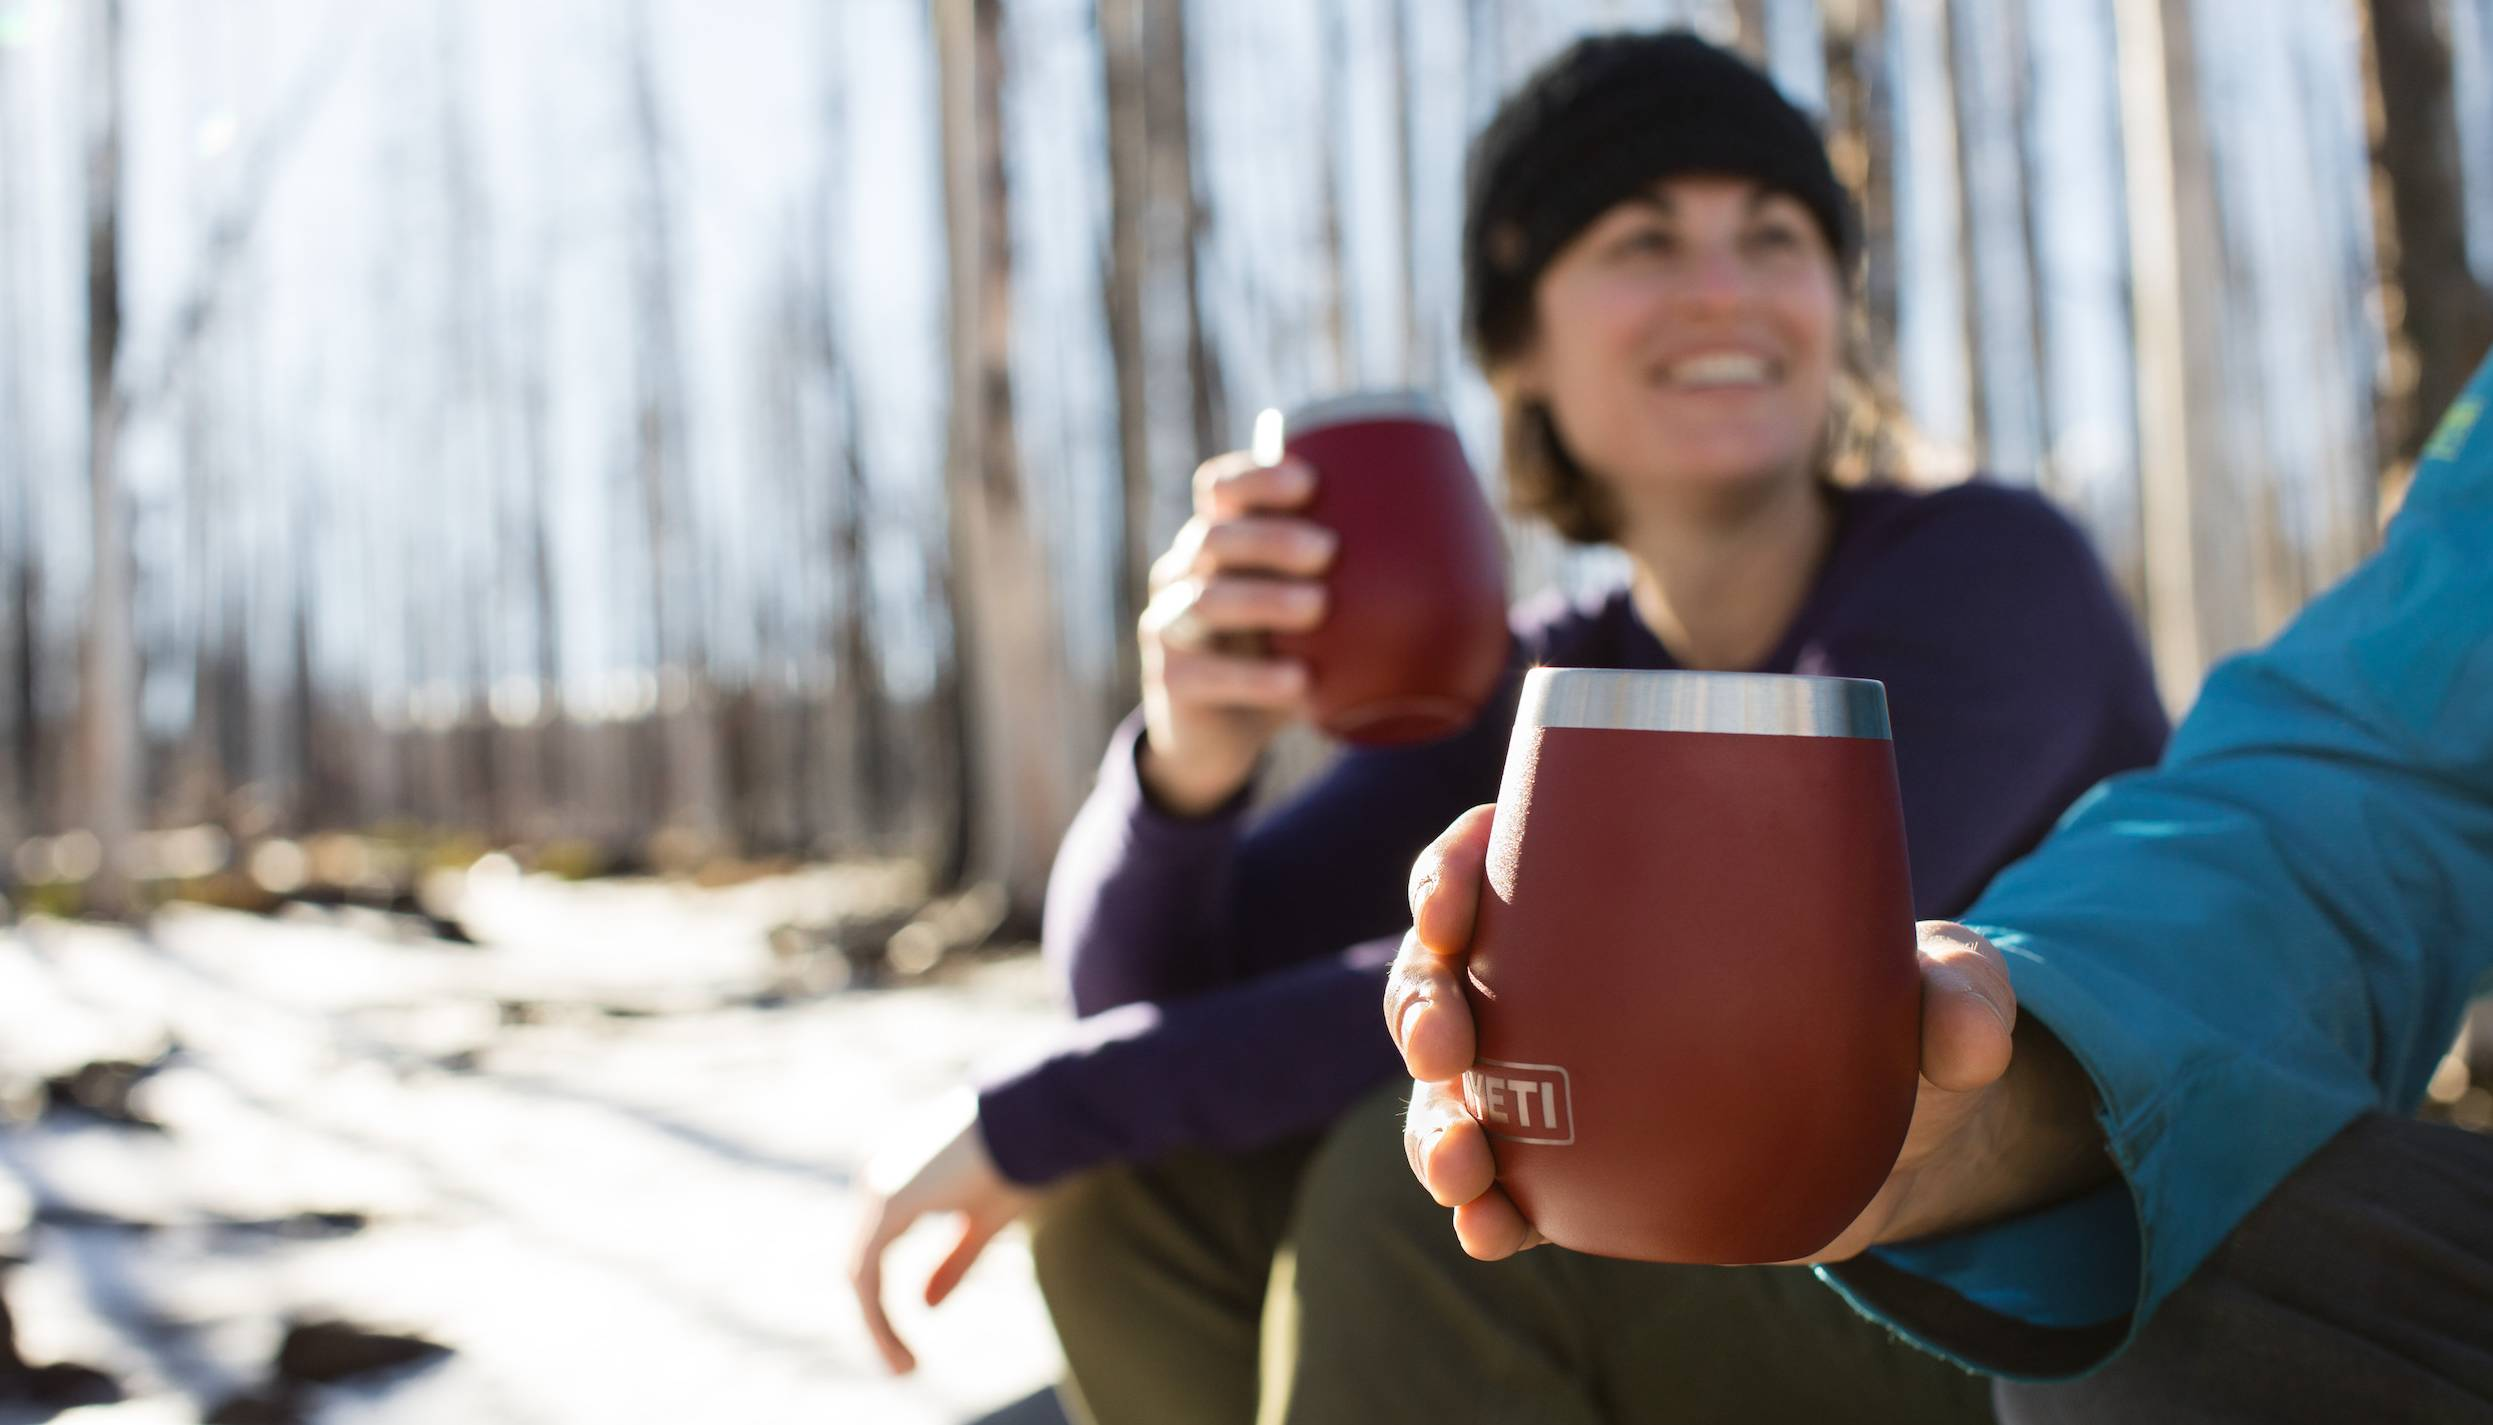 YETI Wine Brick Red - Gifts for Camping